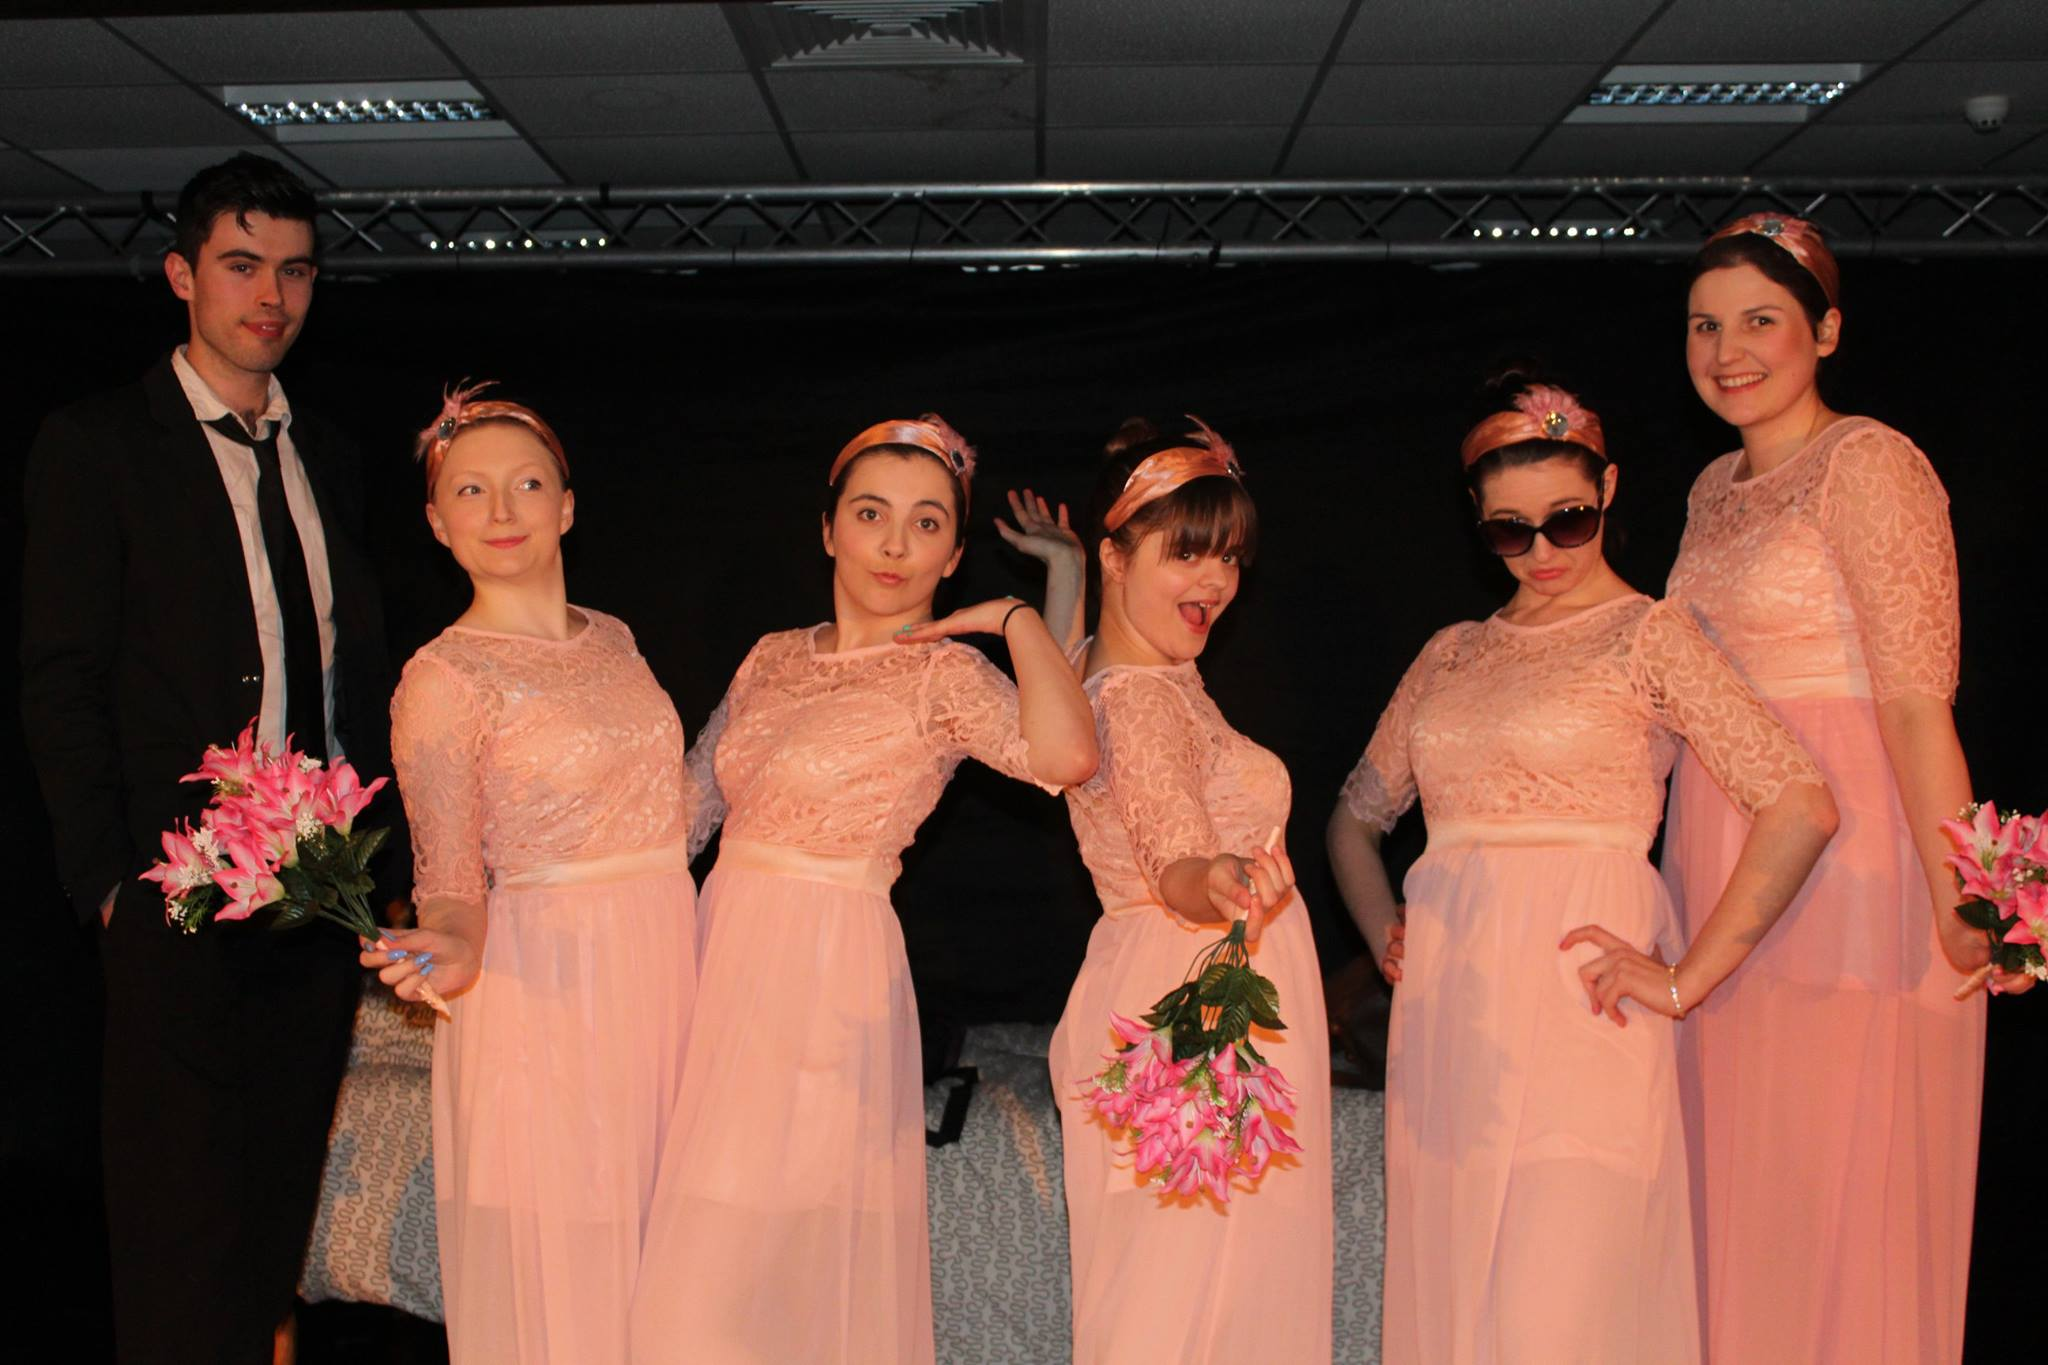 15_3 5 Women in the Same Dress (1)